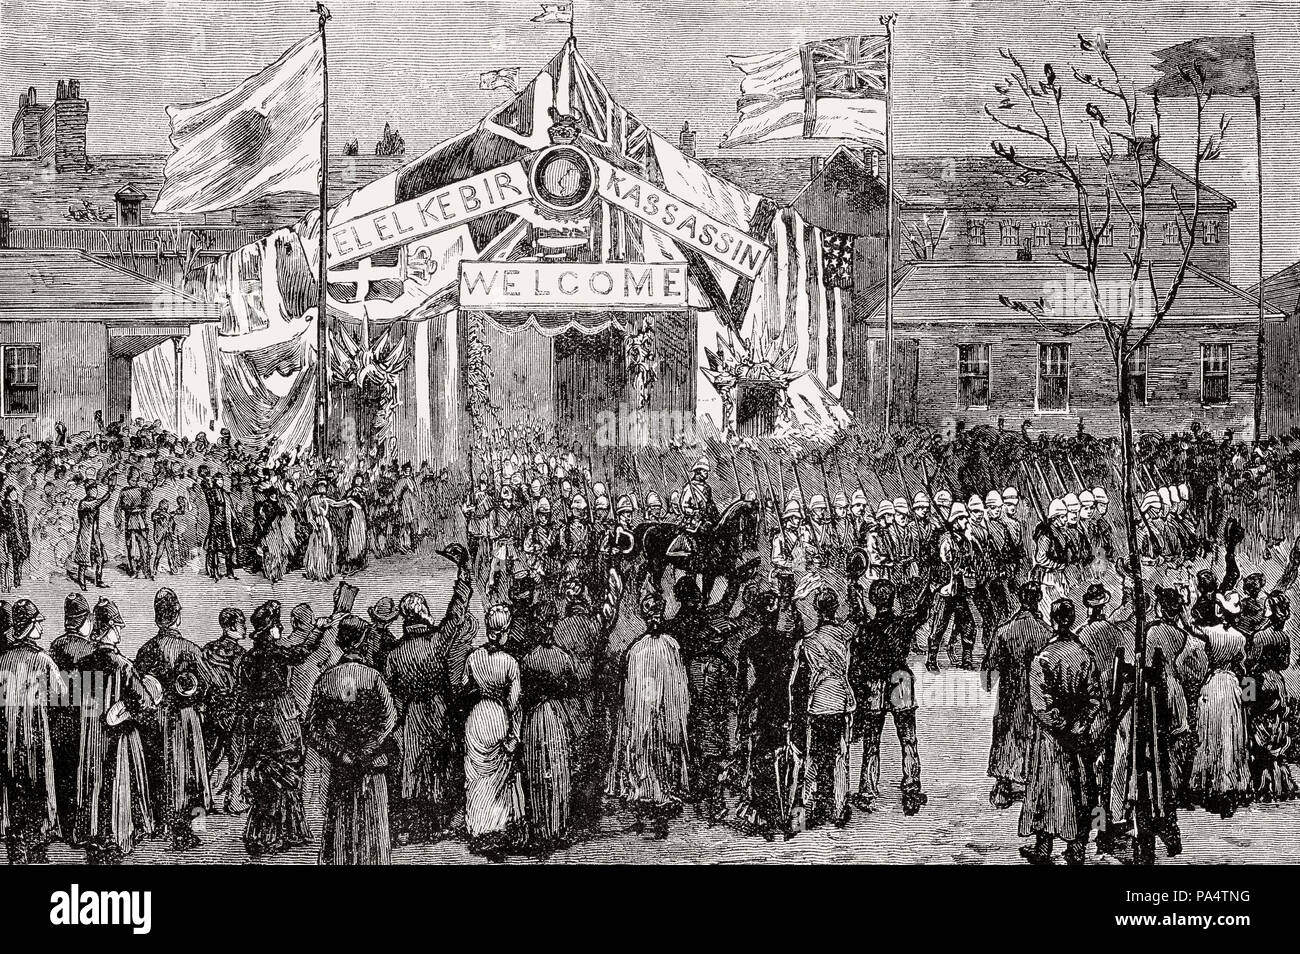 Royal Marine Light Infantry return to Chatham after the Battle of Tel-el-Kebir on 13th September 1882, Egyptian War, From British Battles on Land and  - Stock Image